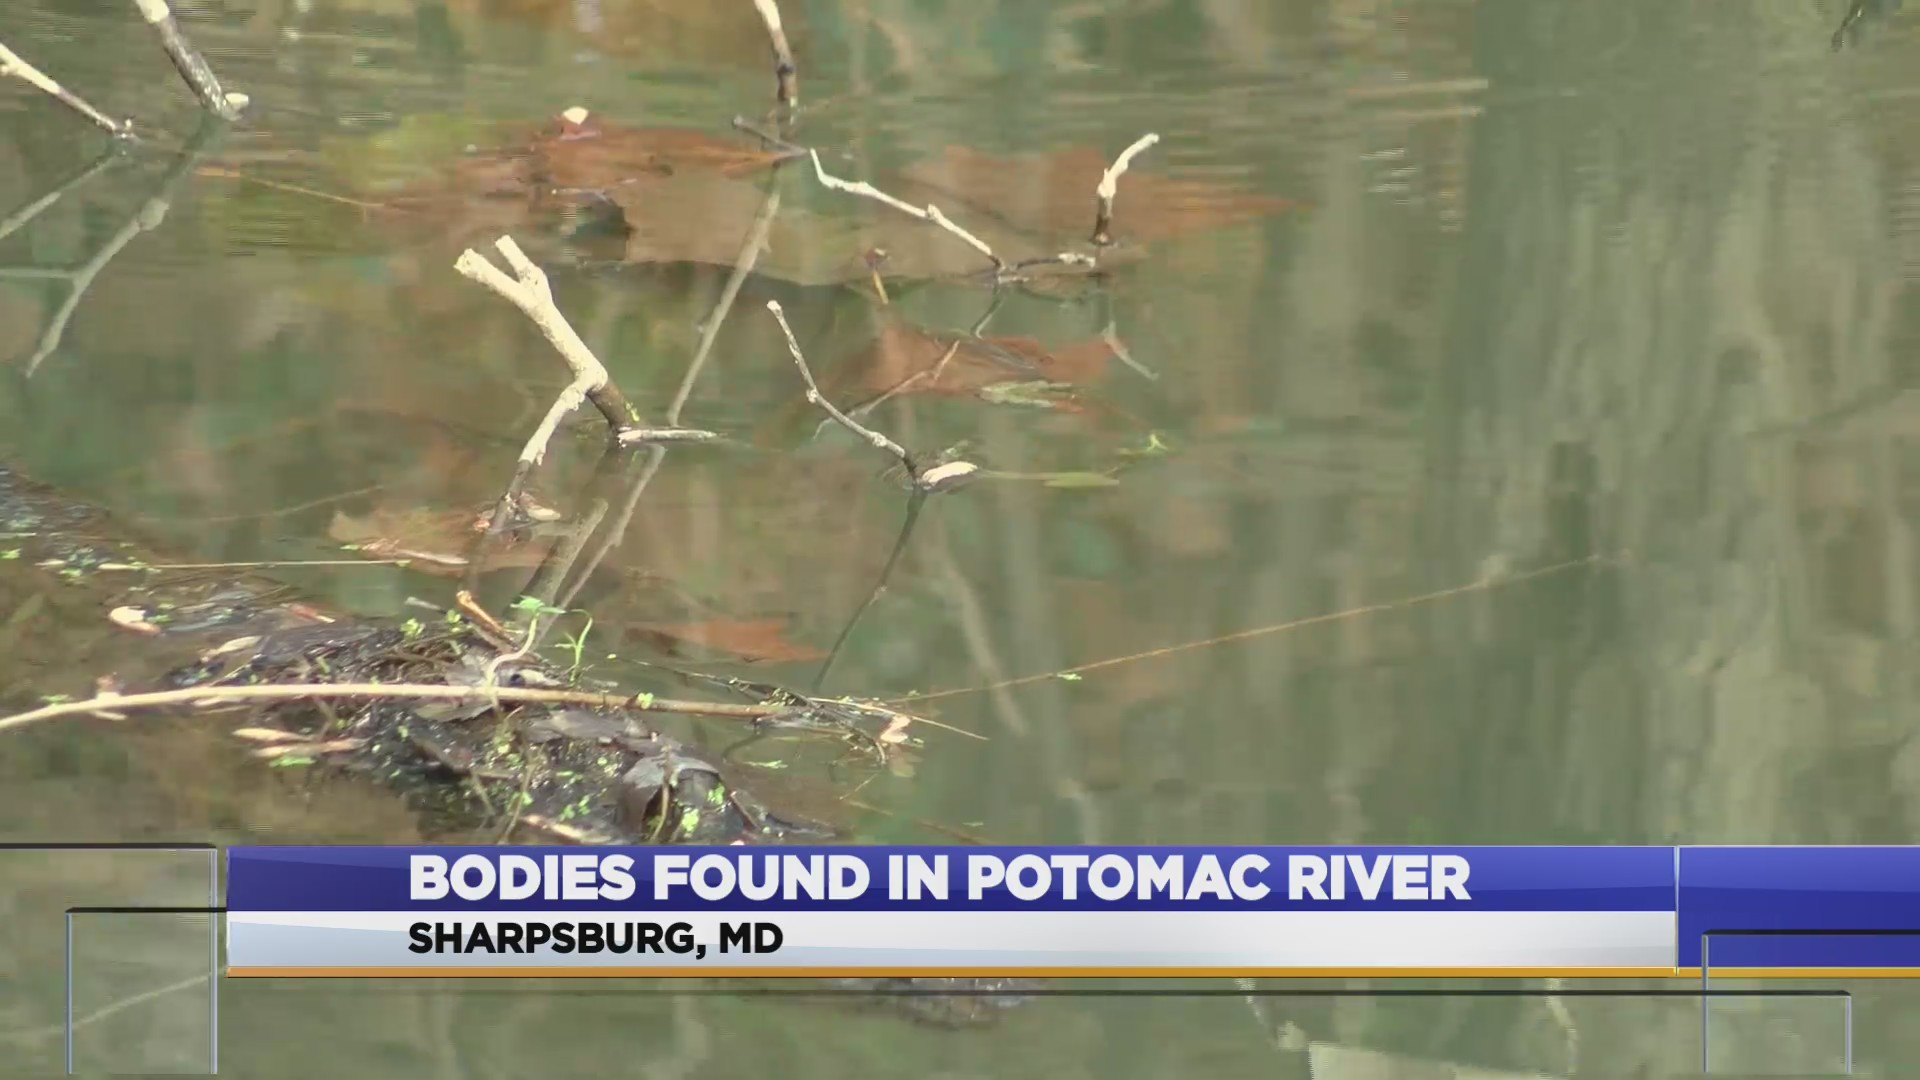 Two_bodies_found_in_Potomac_River_0_20181119231014